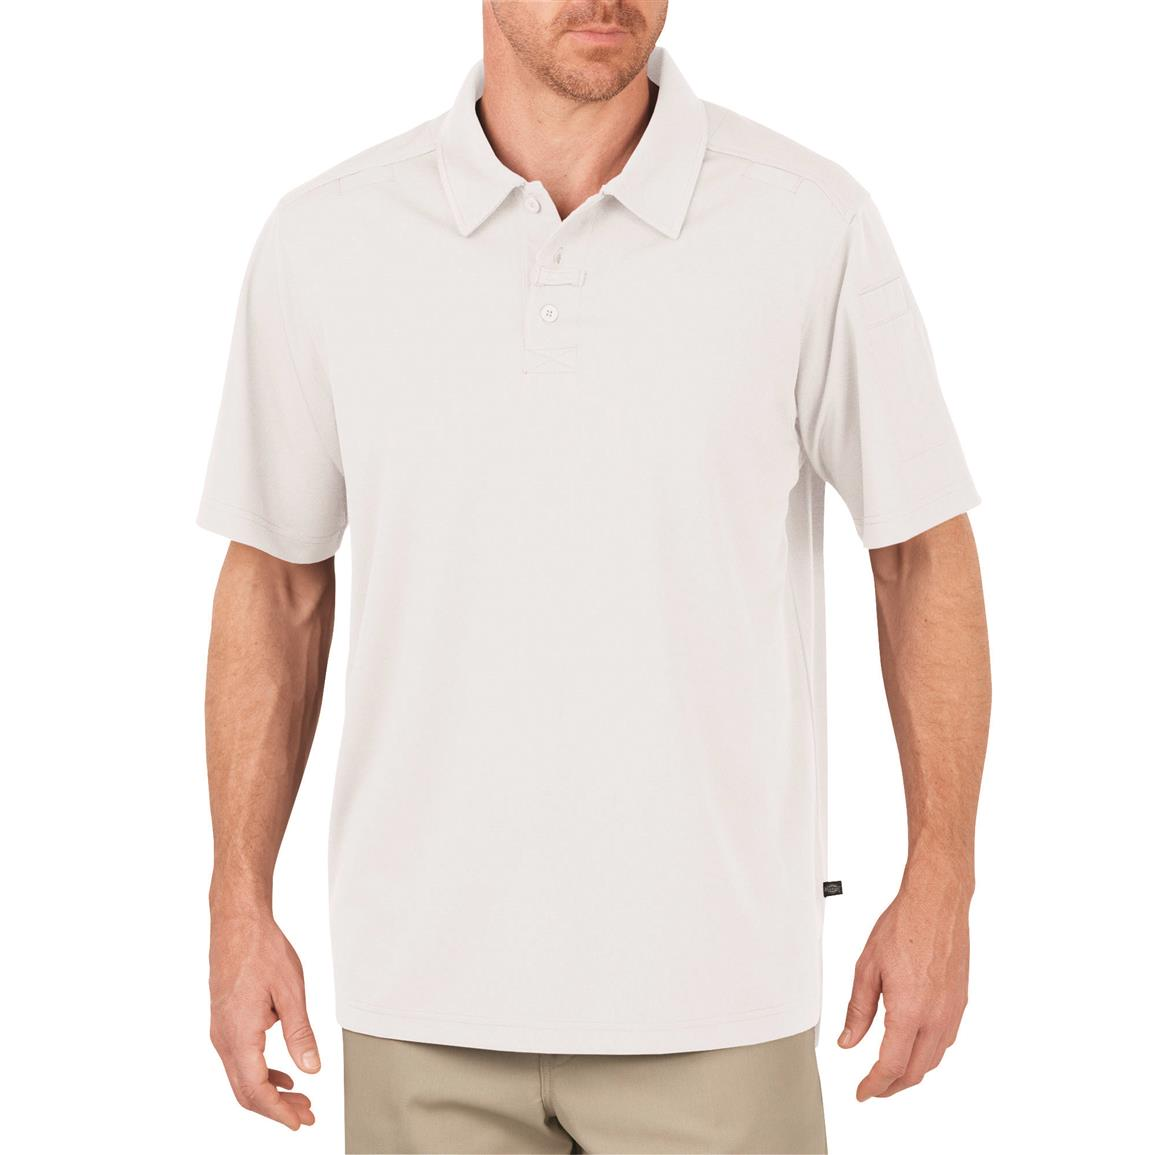 Dickies Men's Tactical Performance Polo Shirt, White